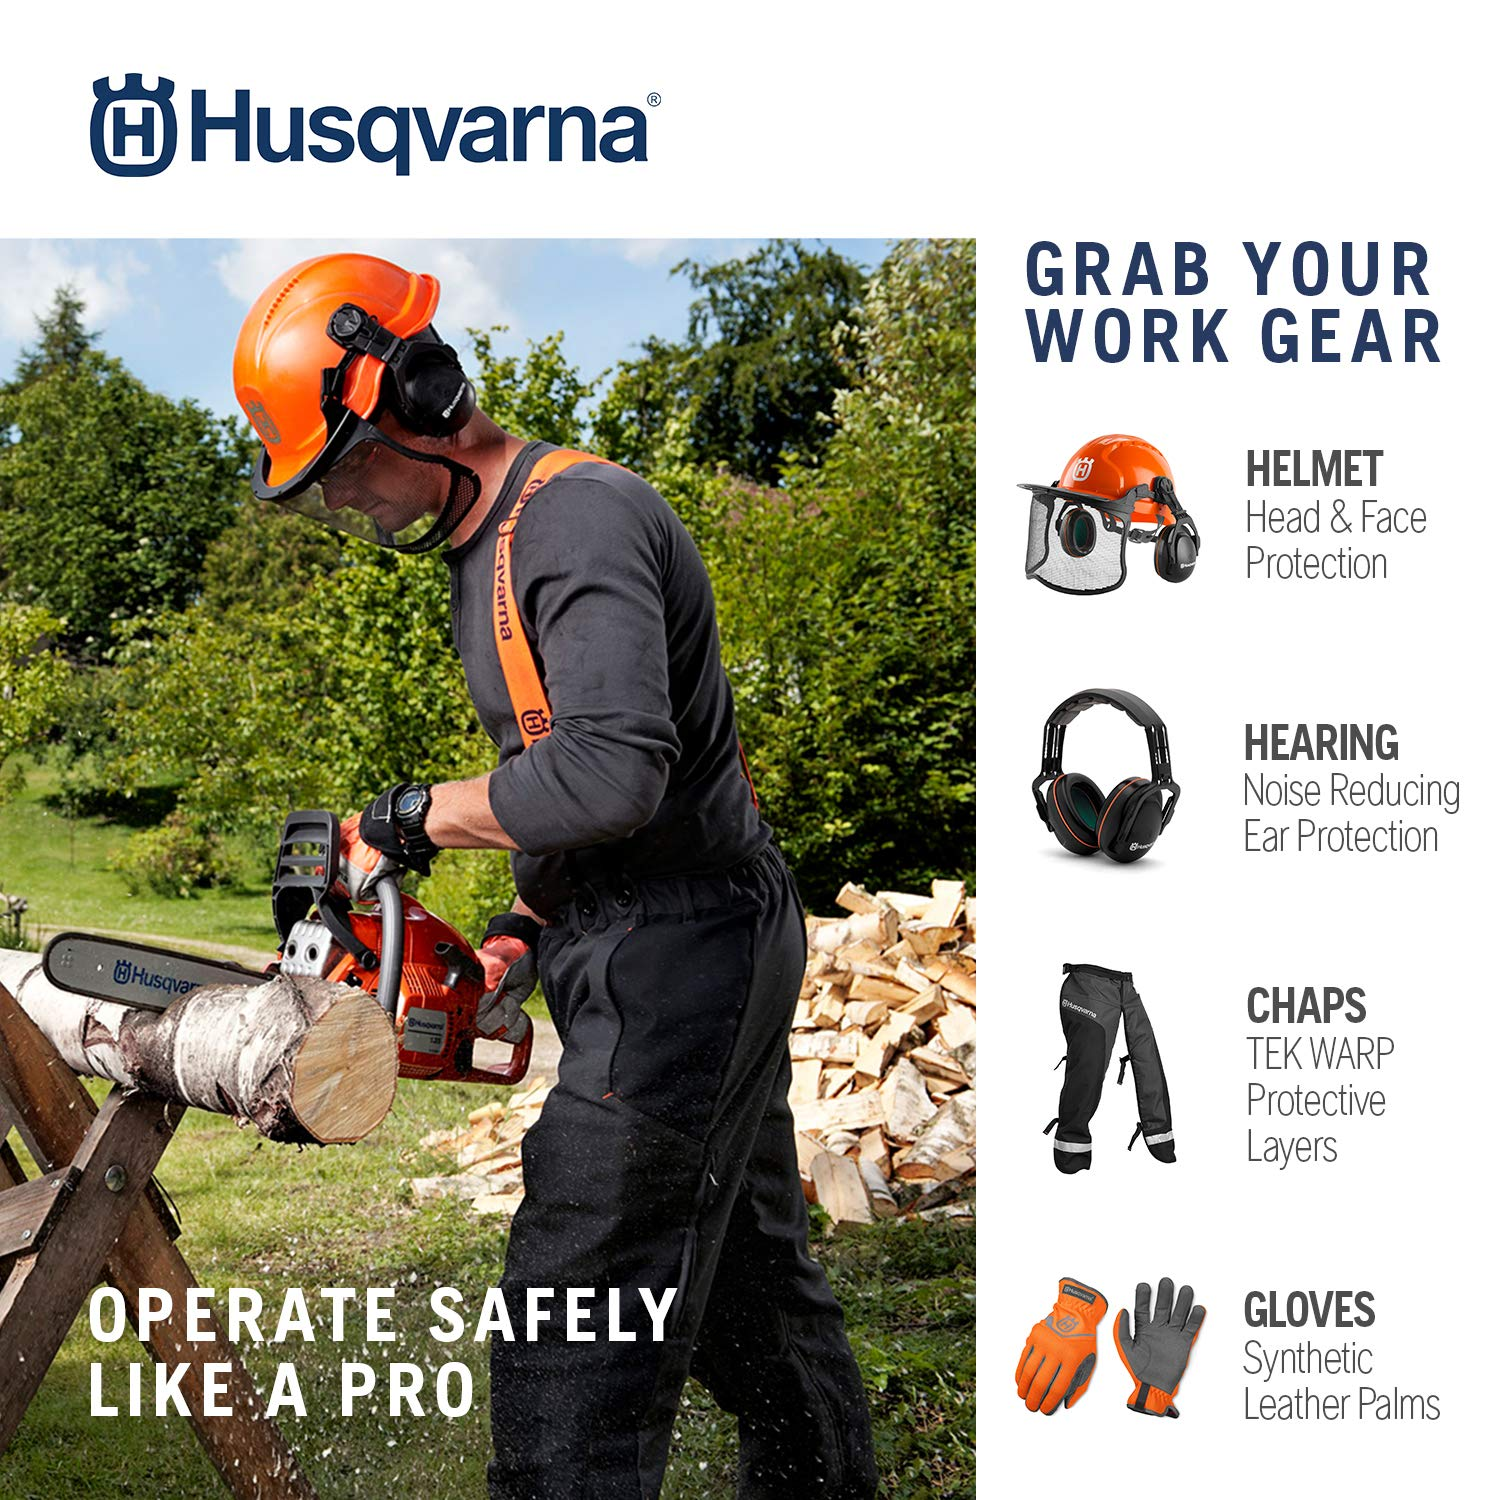 Husqvarna 460 Rancher Chainsaws product image 12